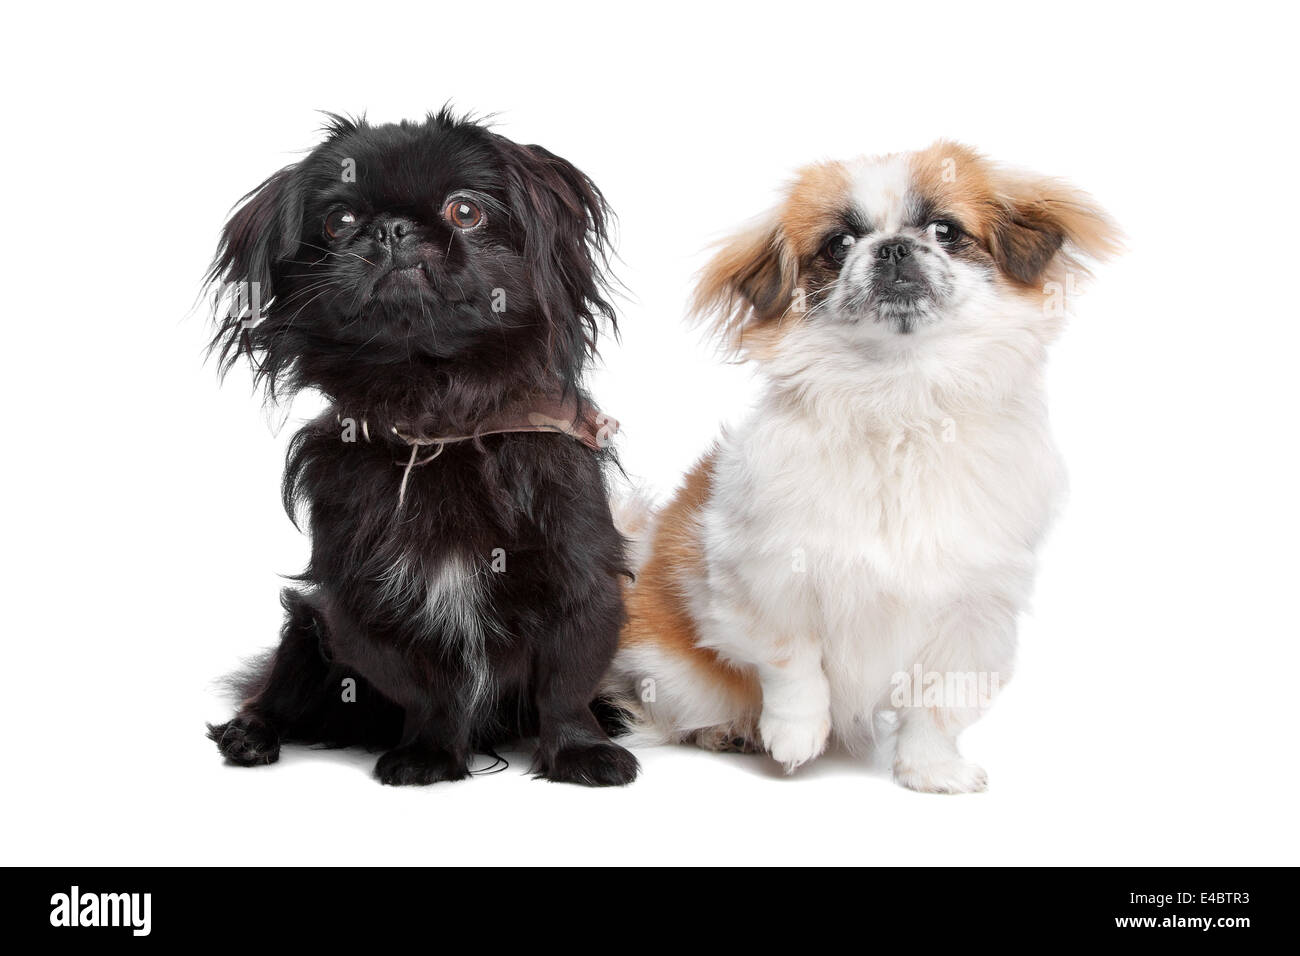 Hello, please tell me how Pekingese dogs are small children. Is there a danger 91